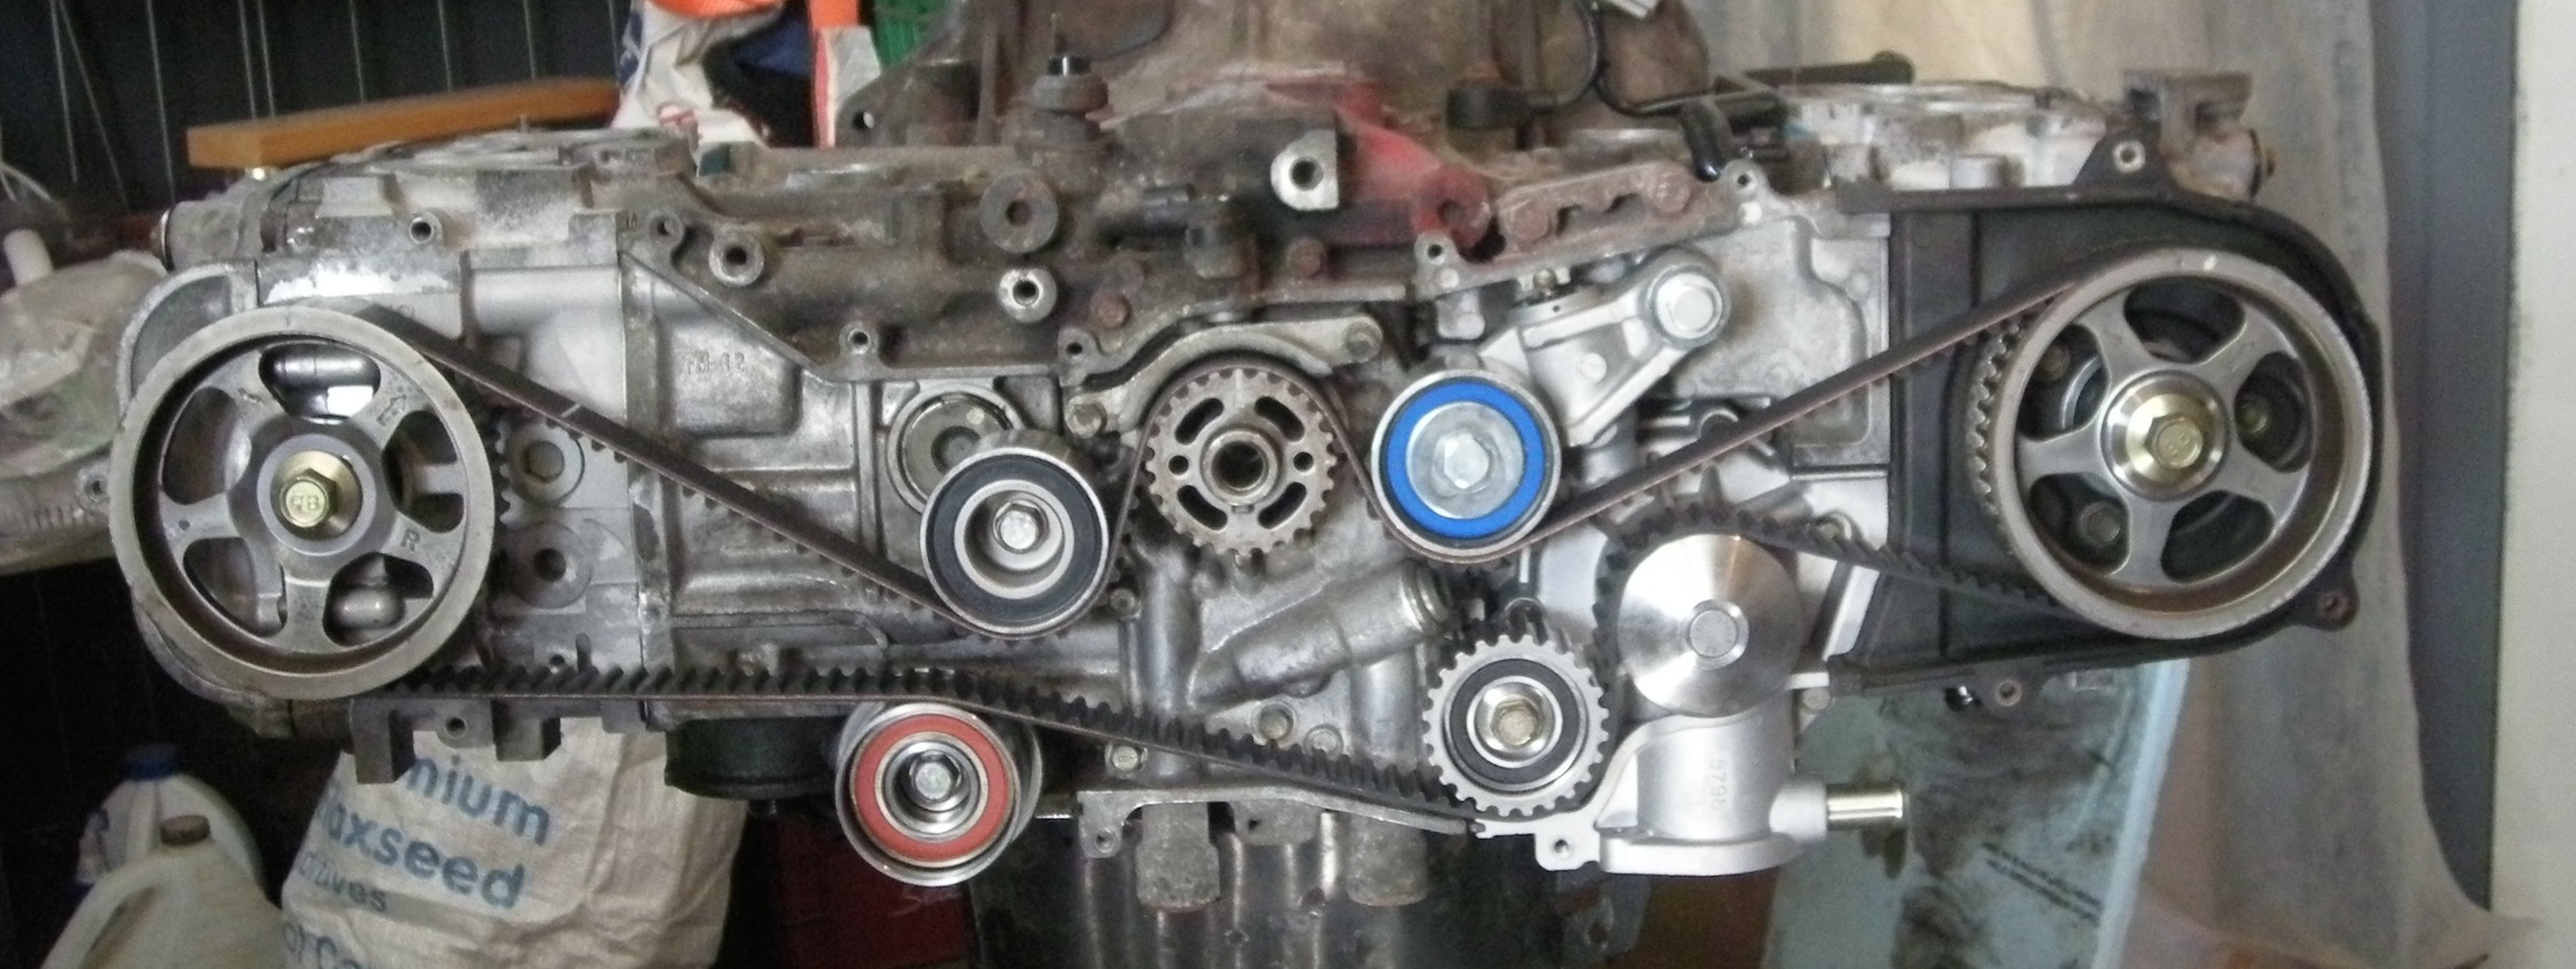 medium resolution of how to set timing timing belt change on a subaru sohc ej25 rh shagbarkblog wordpress com